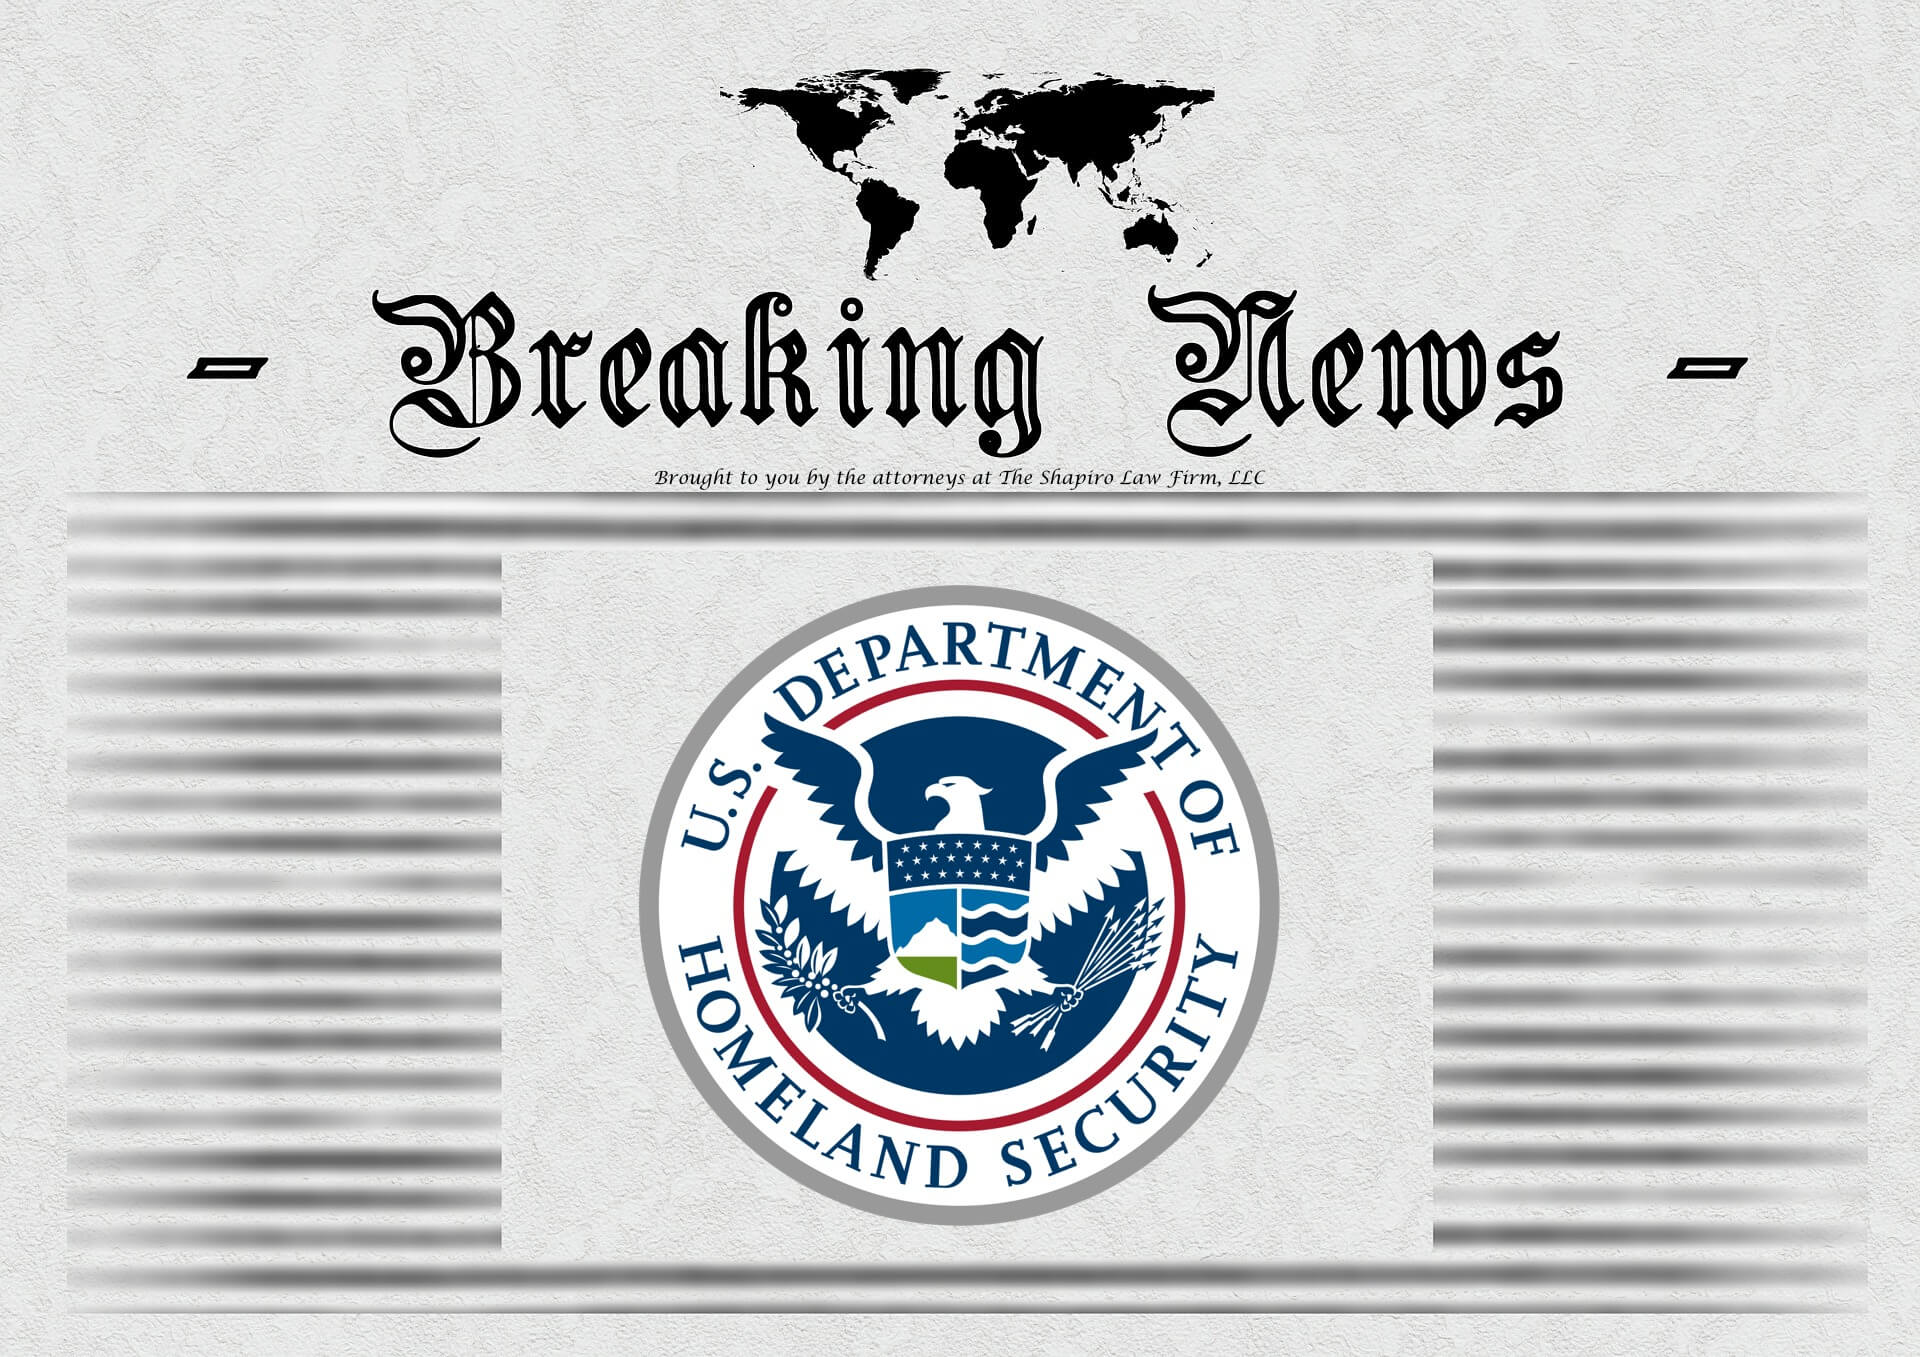 News Release: USCIS to increase filing fees for most